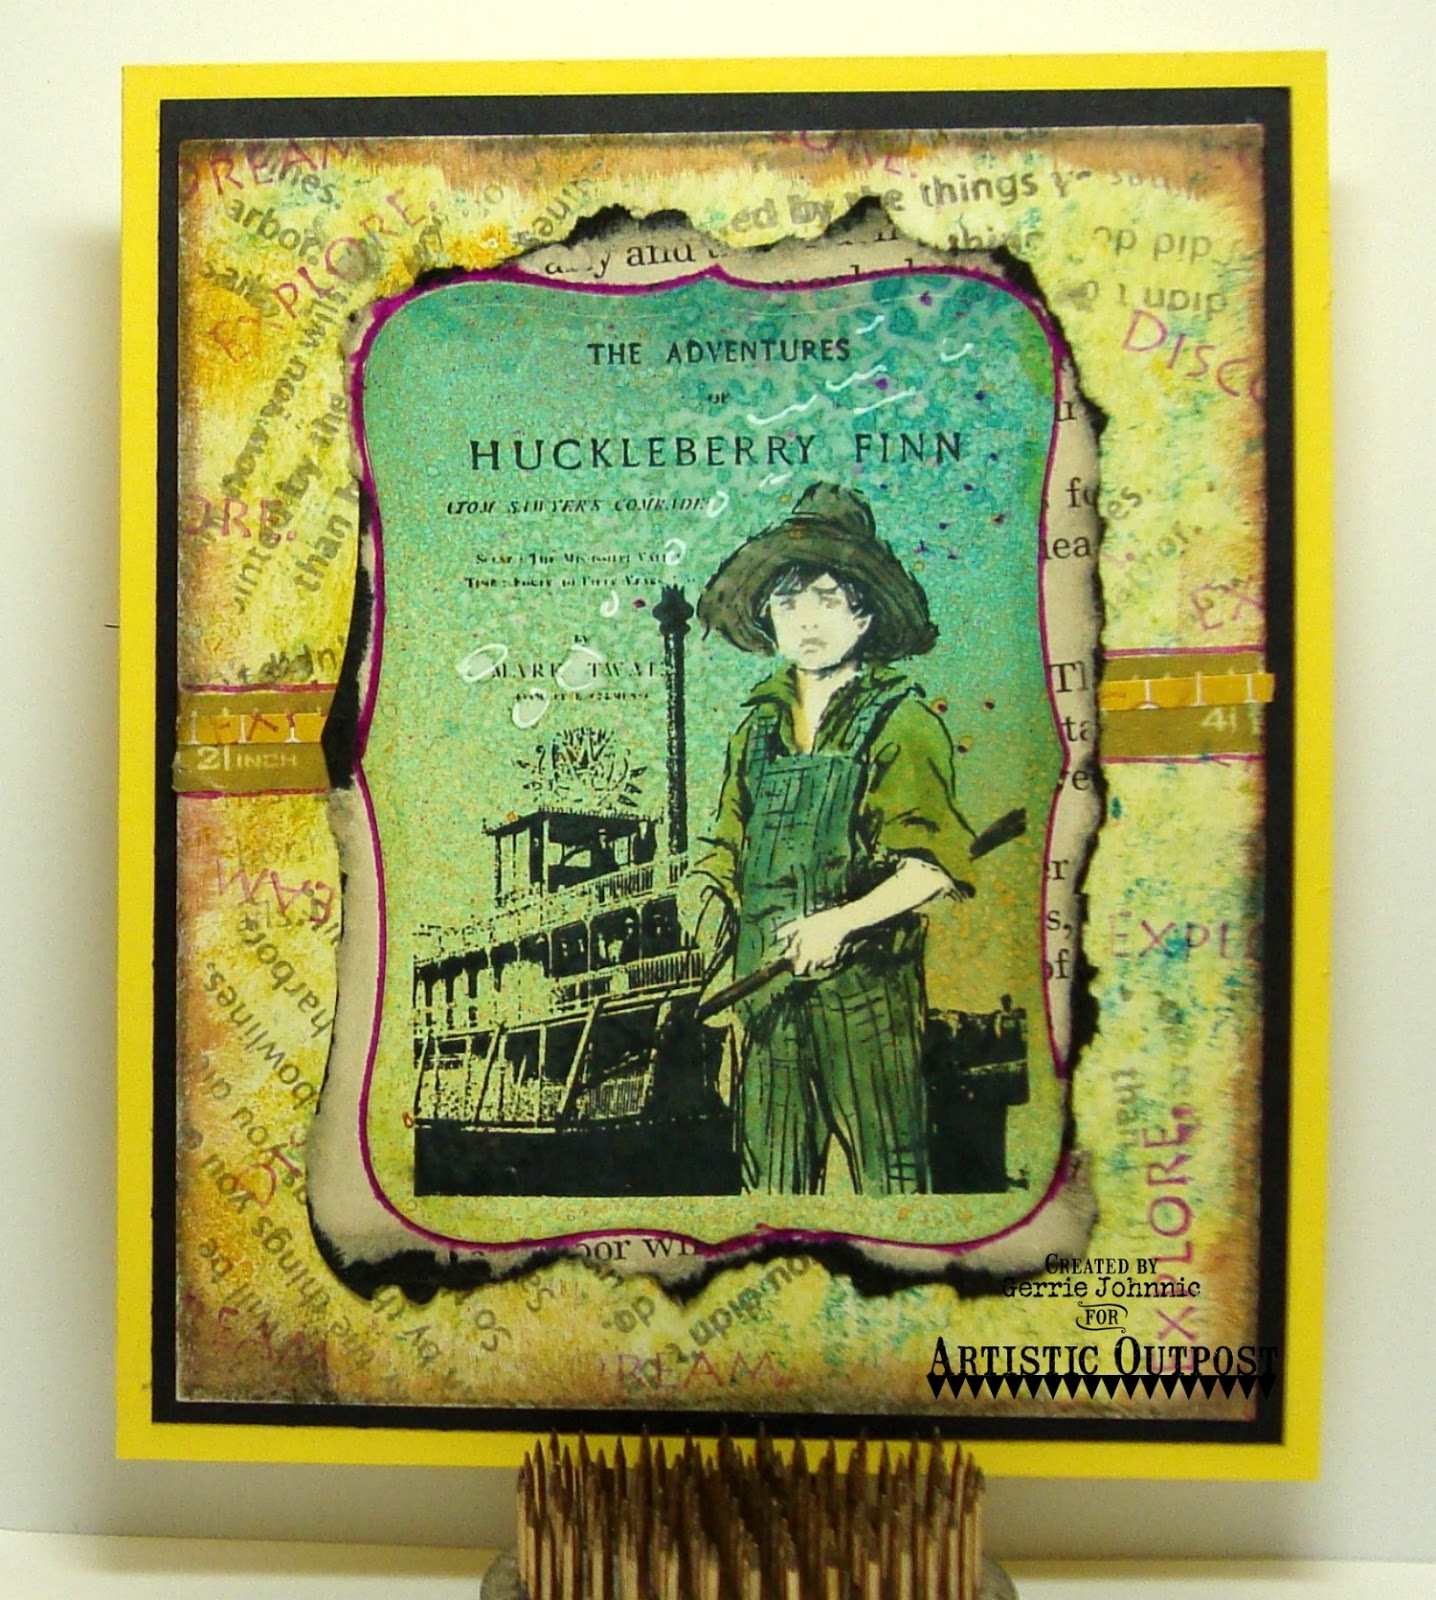 Stamps - Artistic Outpost Huck Finn